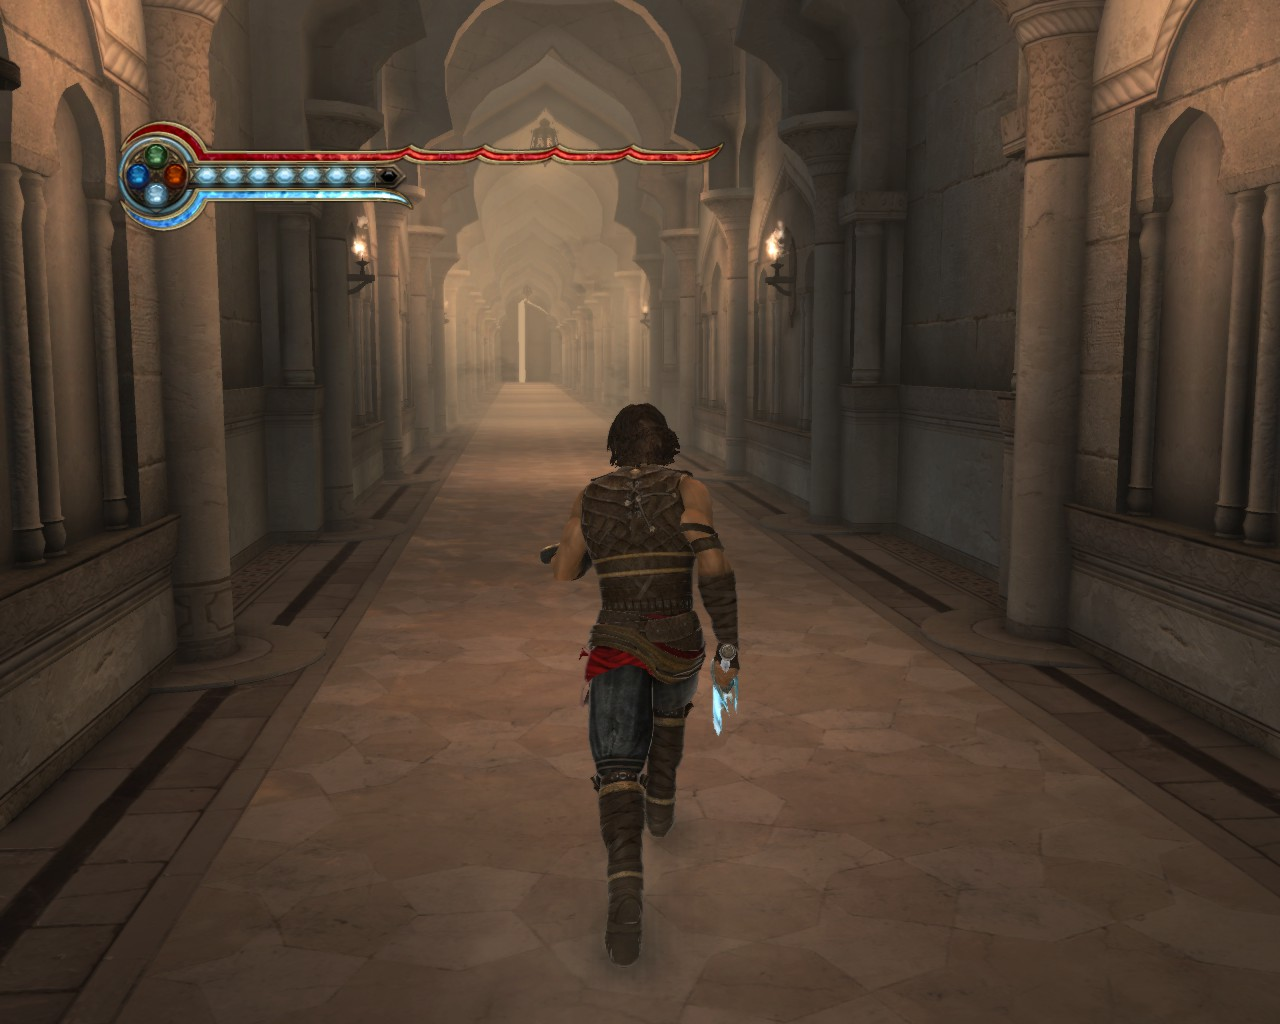 Prince of Persia 2014-06-04 20-19-31-78.jpg - Prince of Persia: The Forgotten Sands